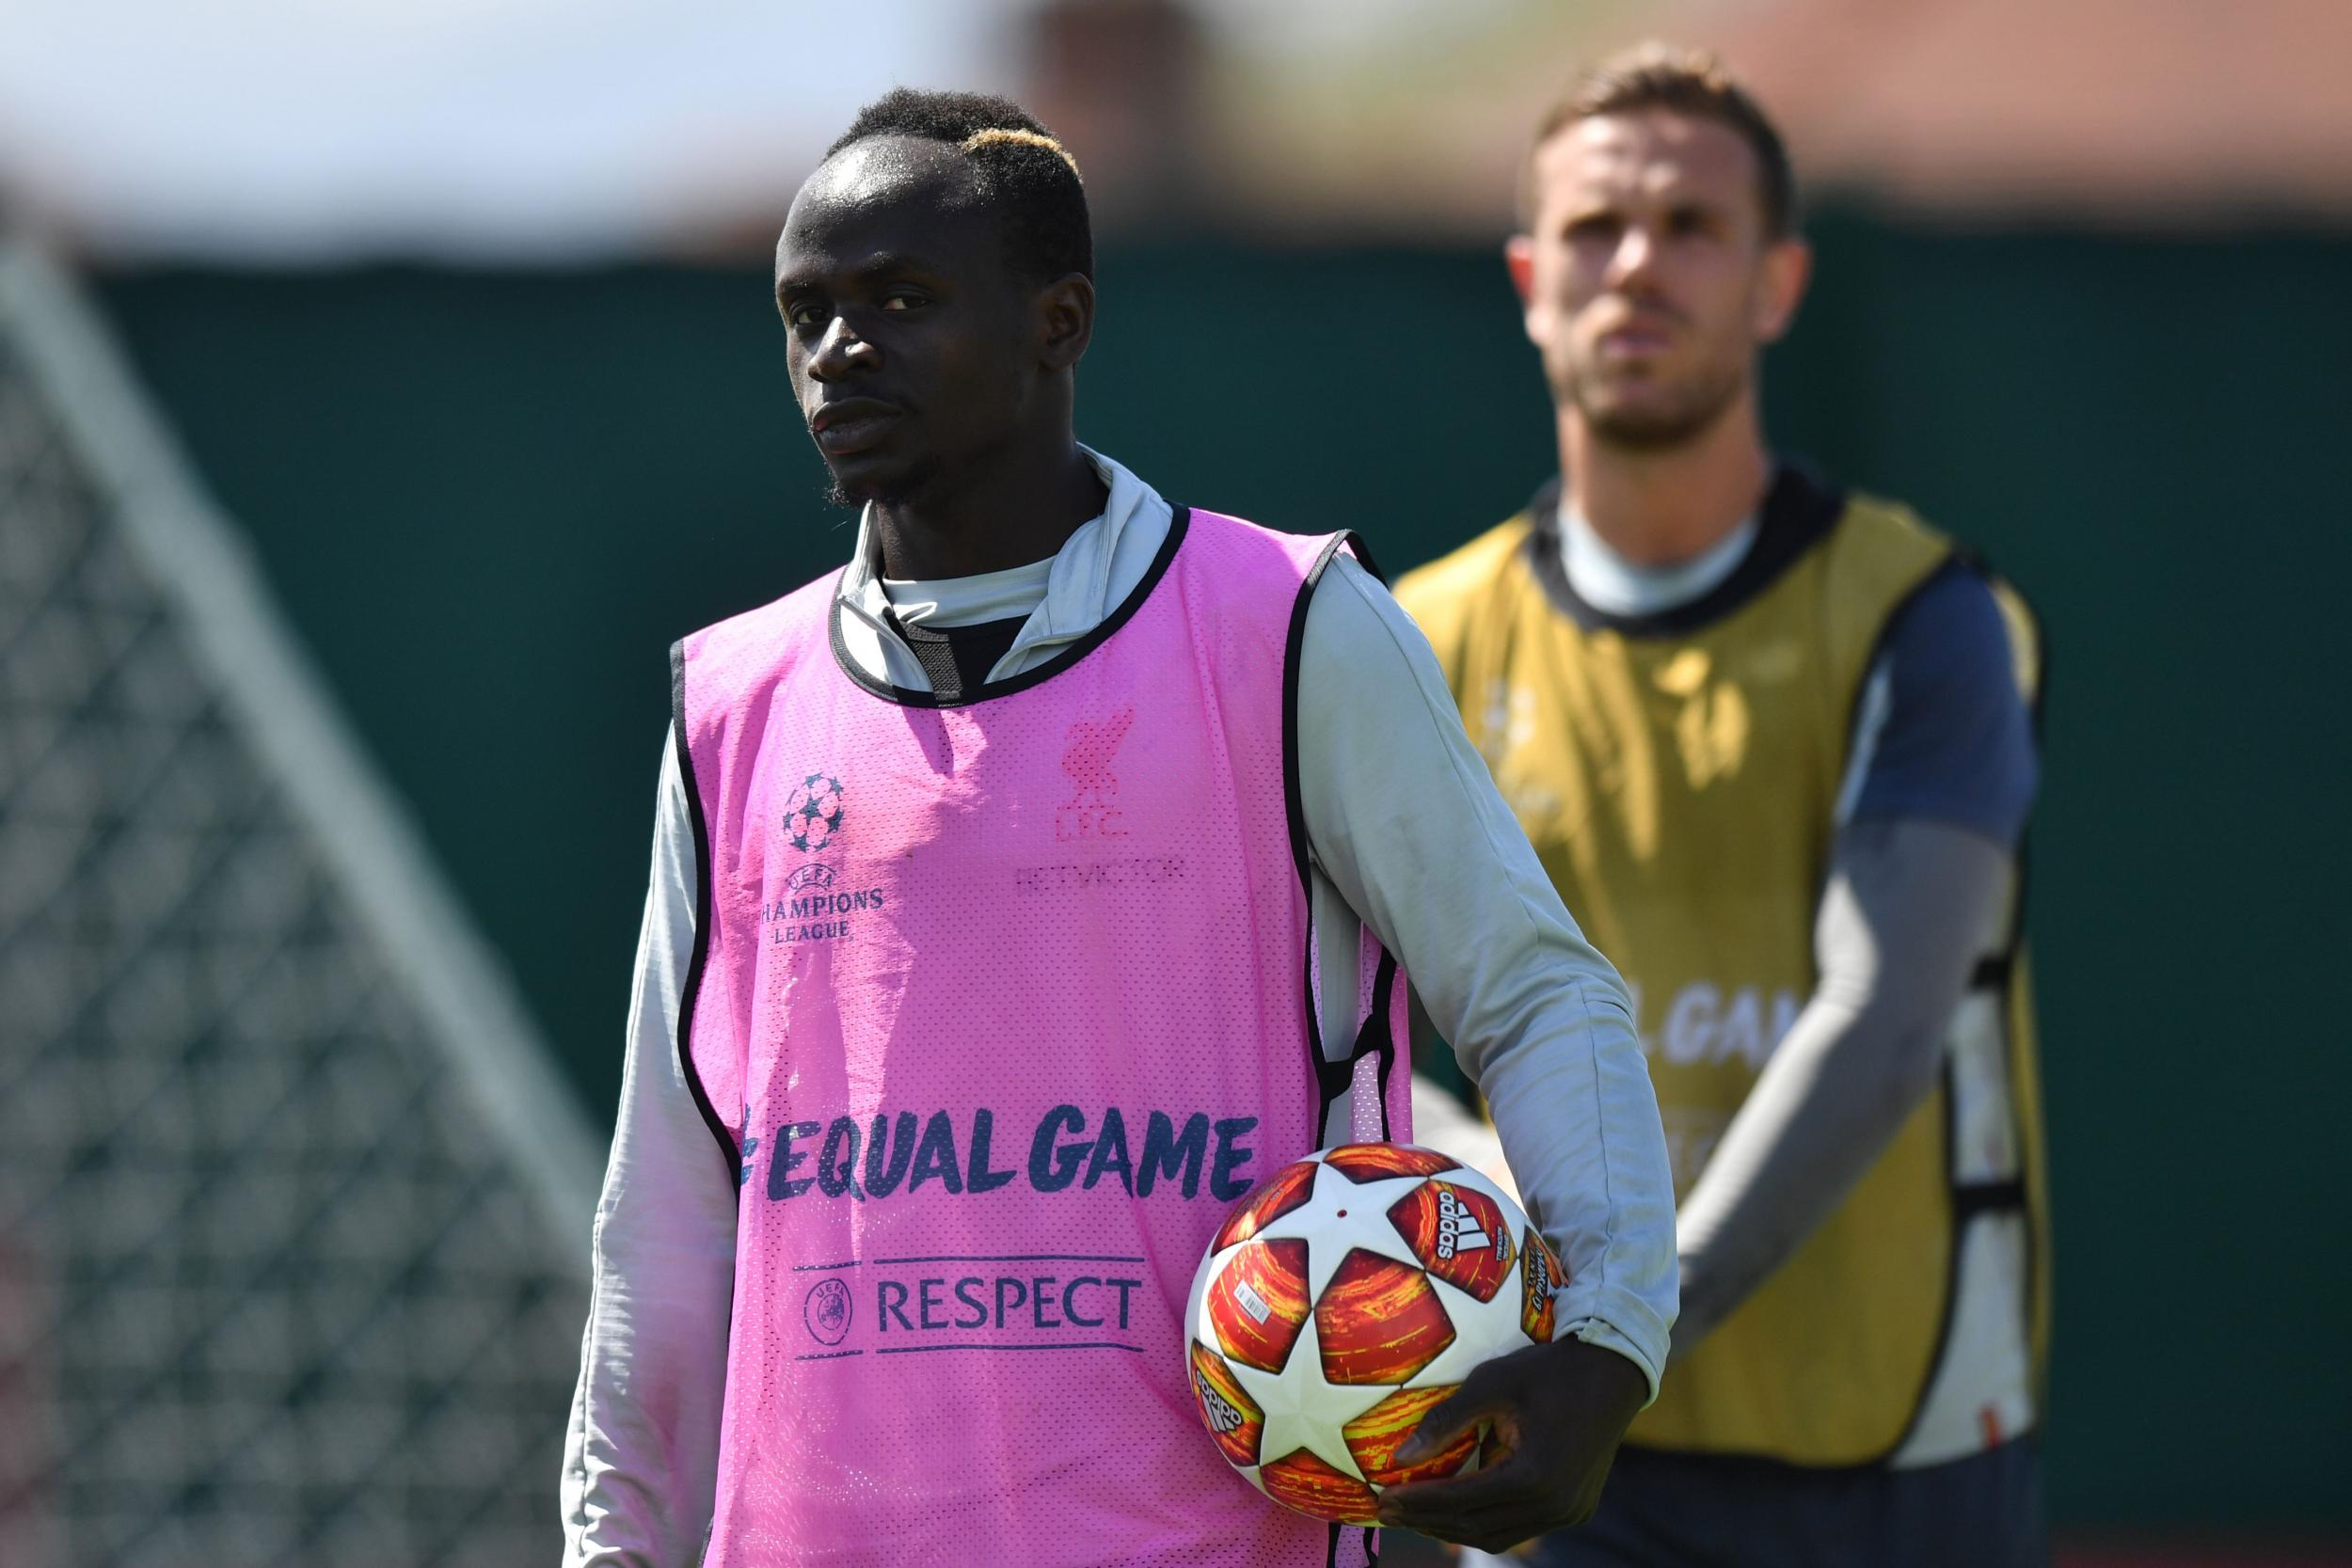 f6561de1c Liverpool winger Mané responds to Real Madrid speculation